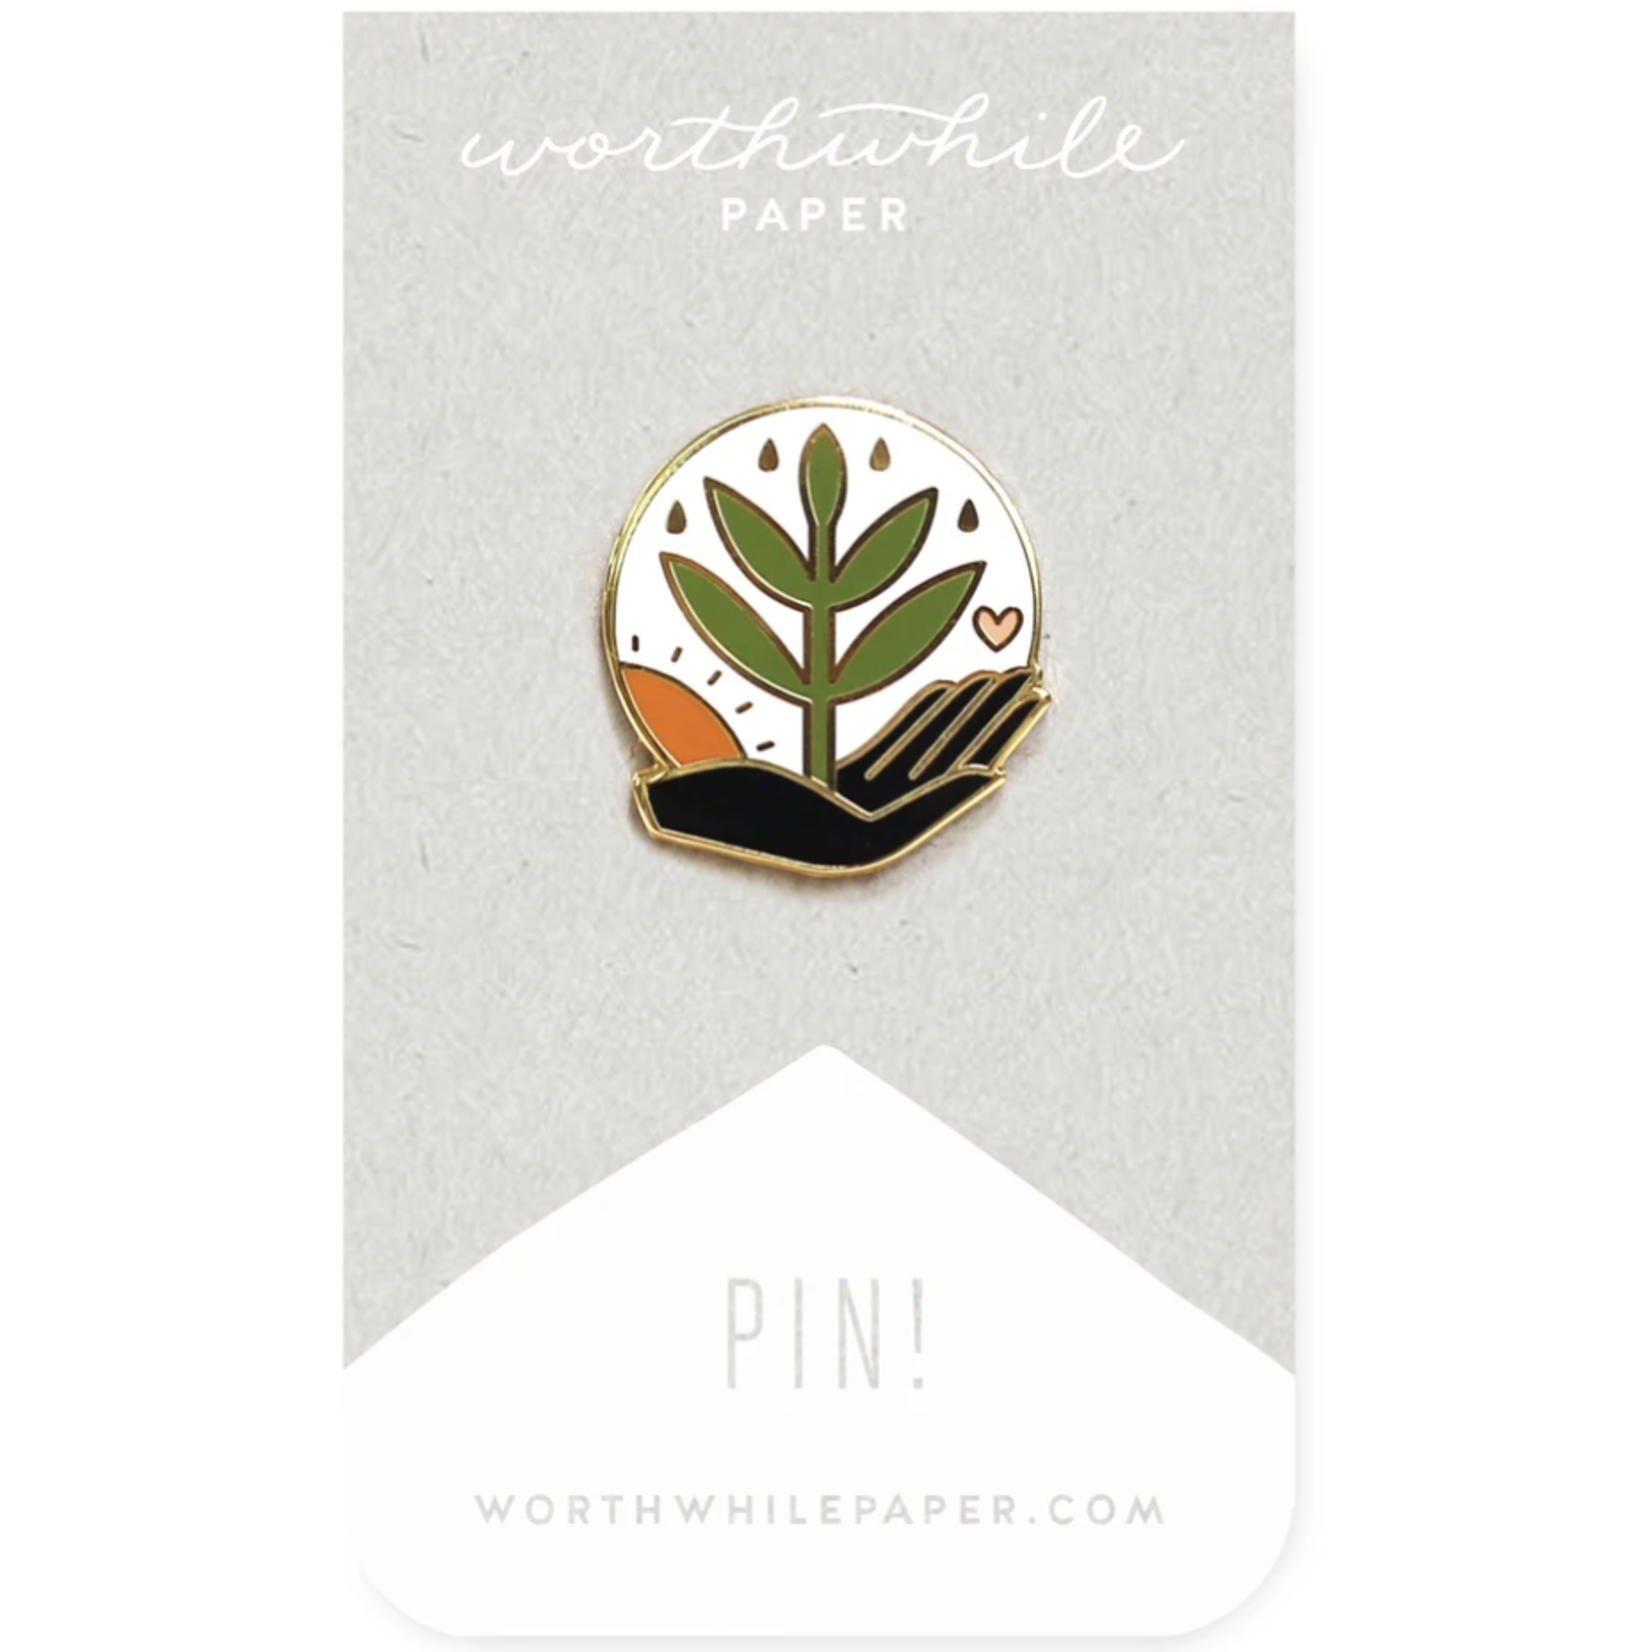 Worthwhile Paper Worthwhile Paper Enamel Pins